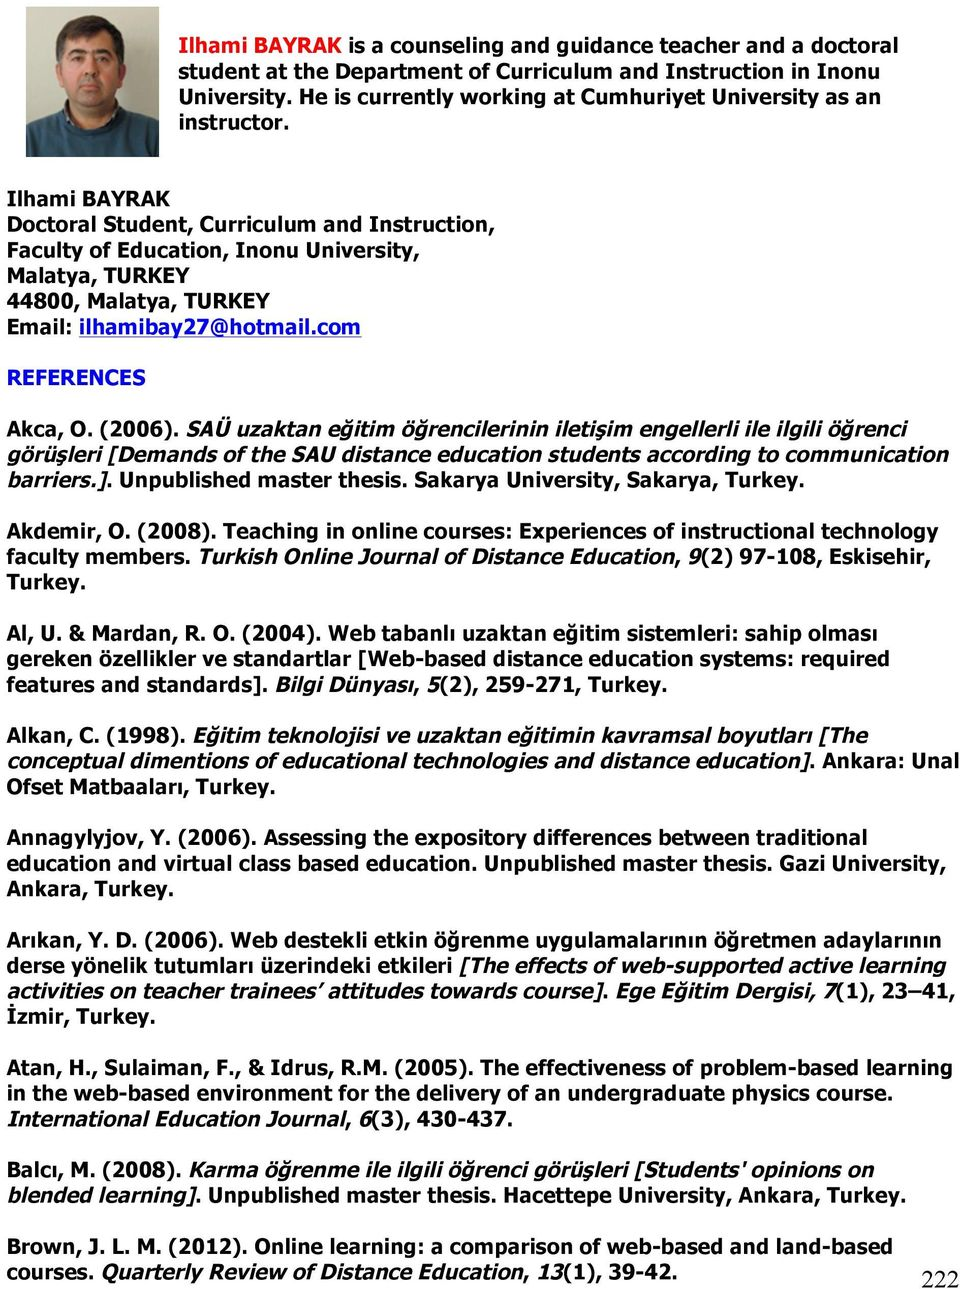 Ilhami BAYRAK Doctoral Student, Curriculum and Instruction, Faculty of Education, Inonu University, Malatya, TURKEY 44800, Malatya, TURKEY Email: ilhamibay27@hotmail.com REFERENCES Akca, O. (2006).